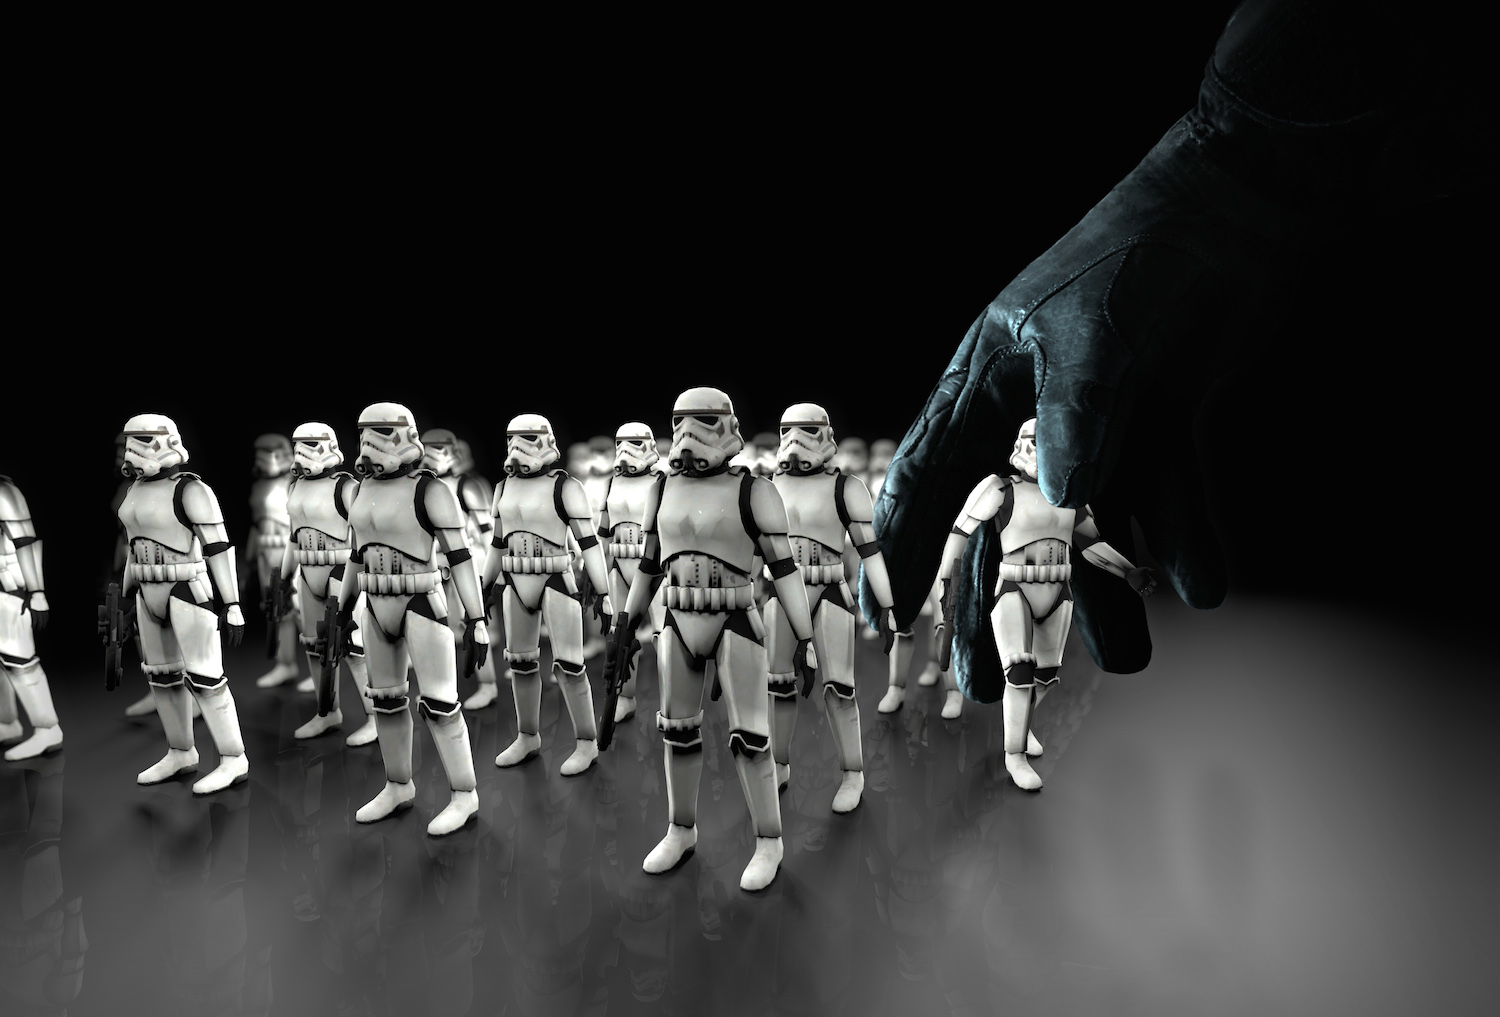 Star wars treviso mostra action figure for Mostra treviso